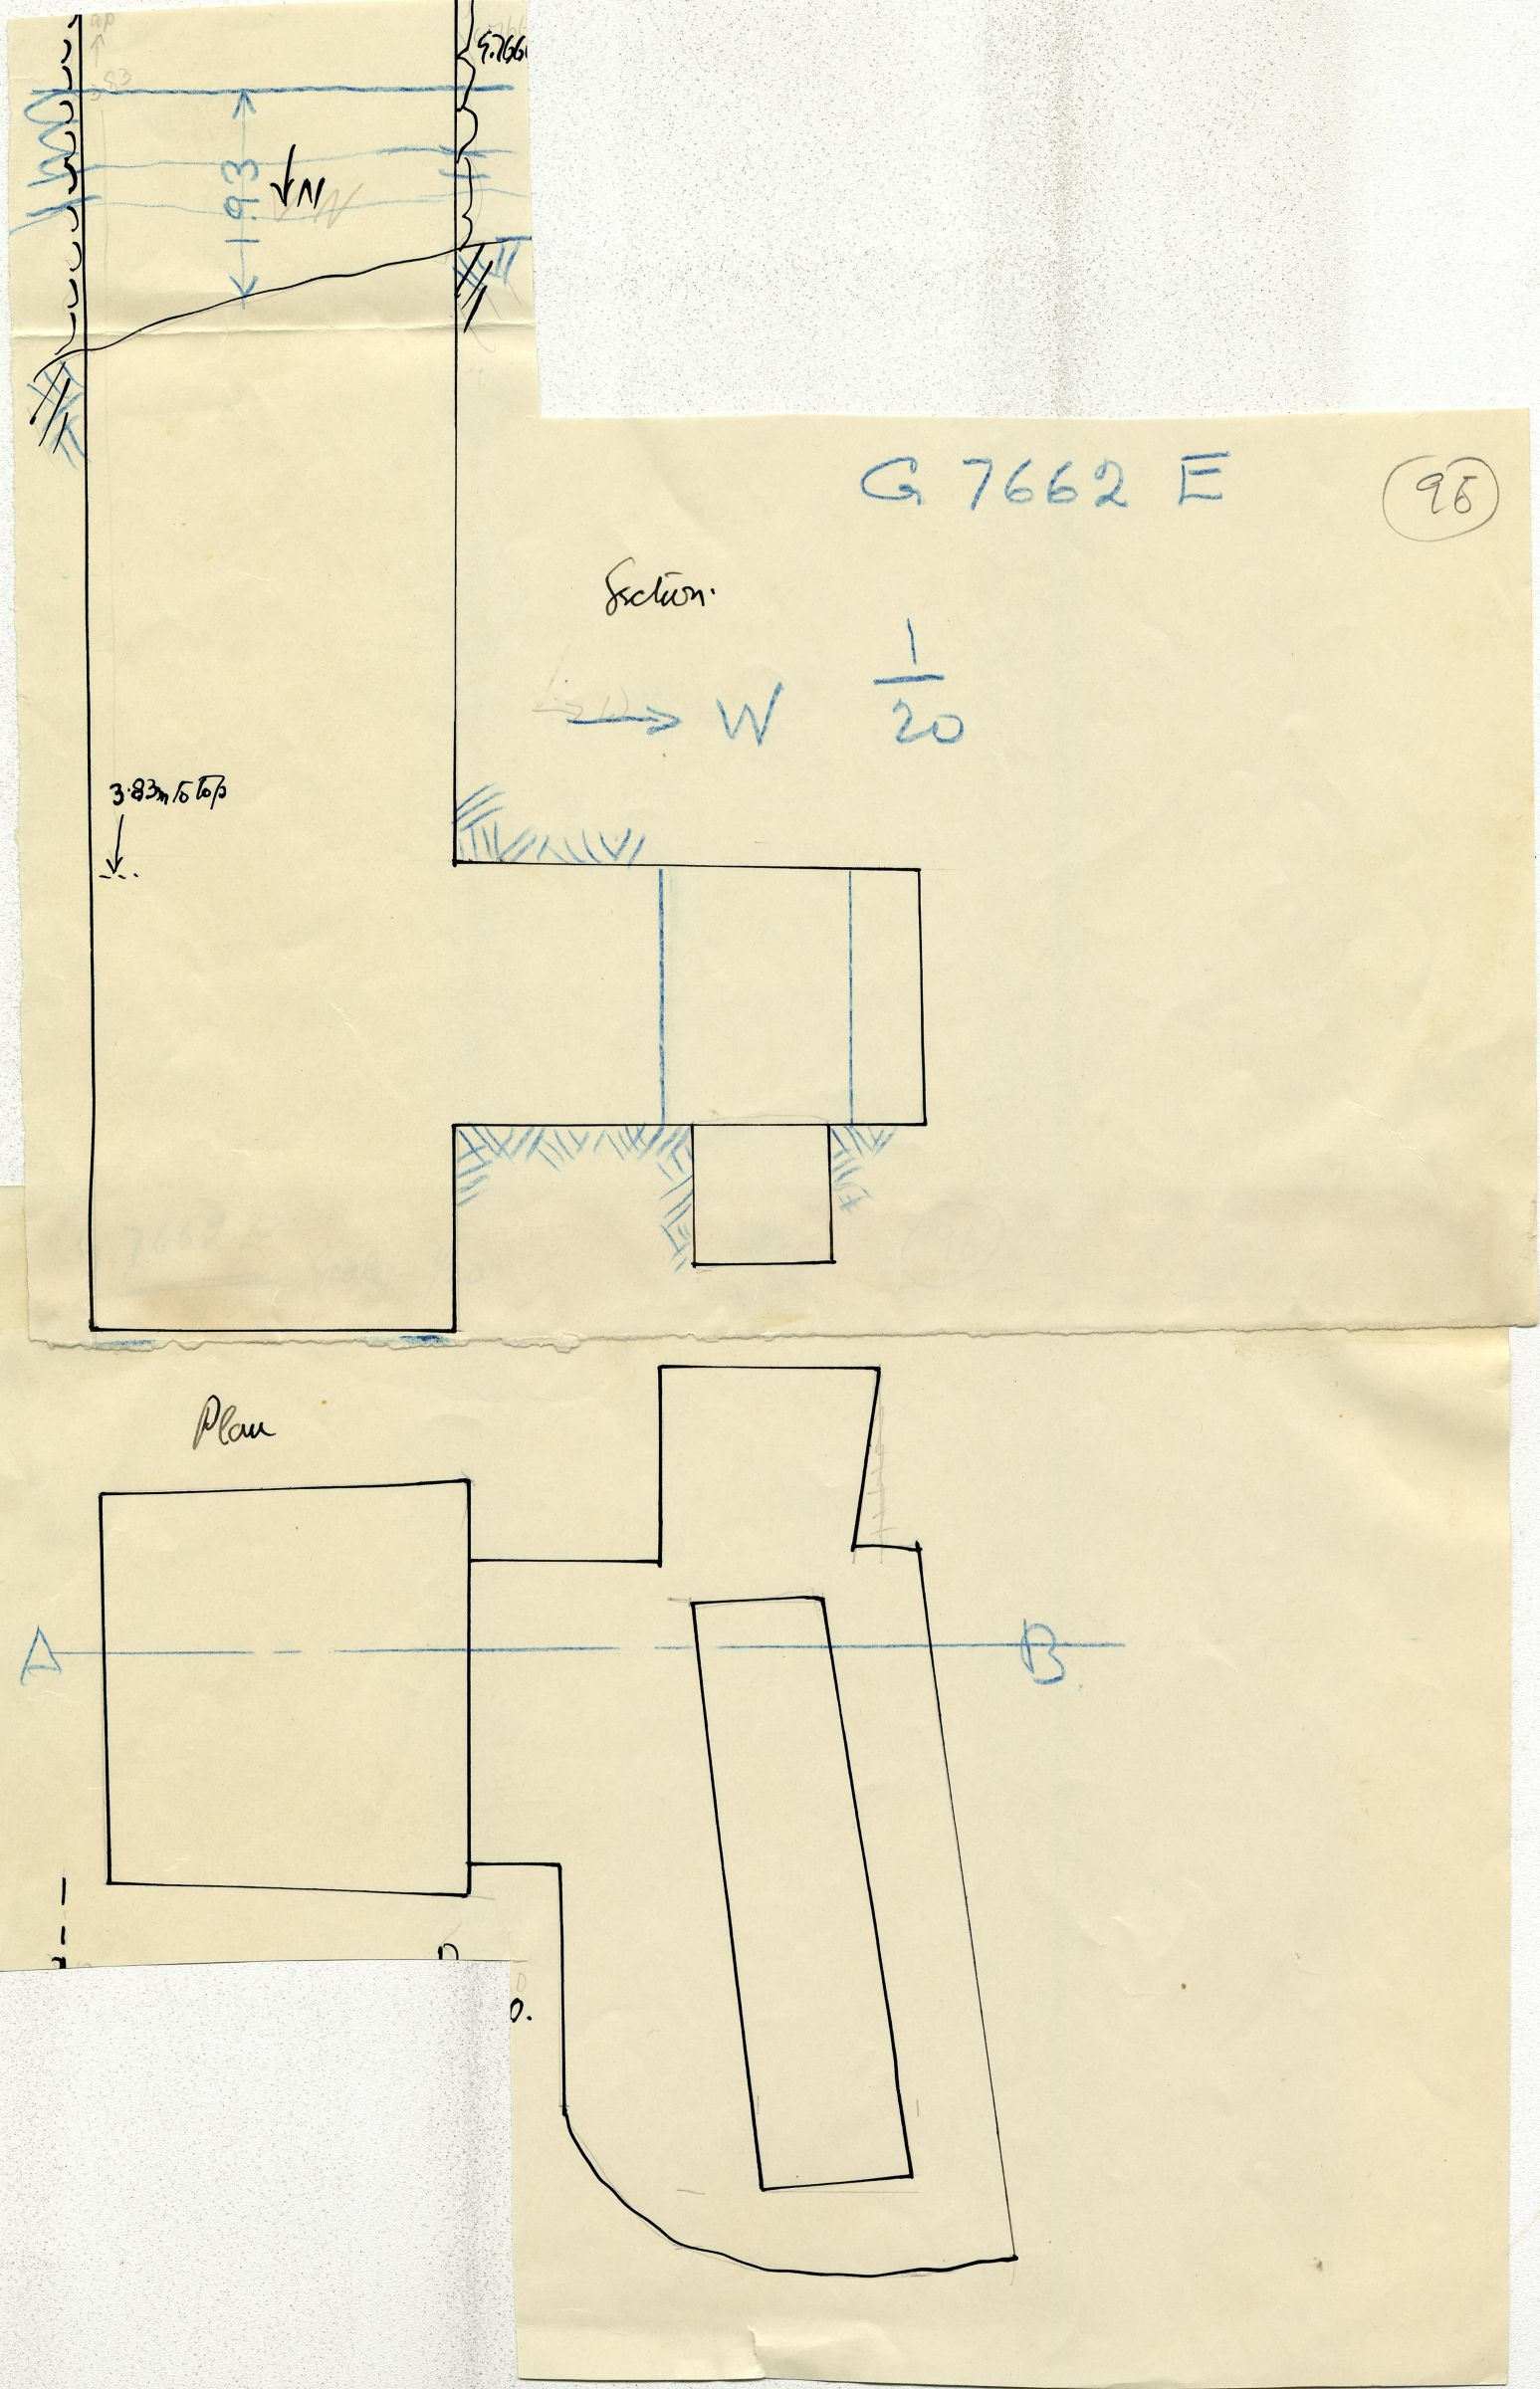 Maps and plans: G 7662, Shaft E